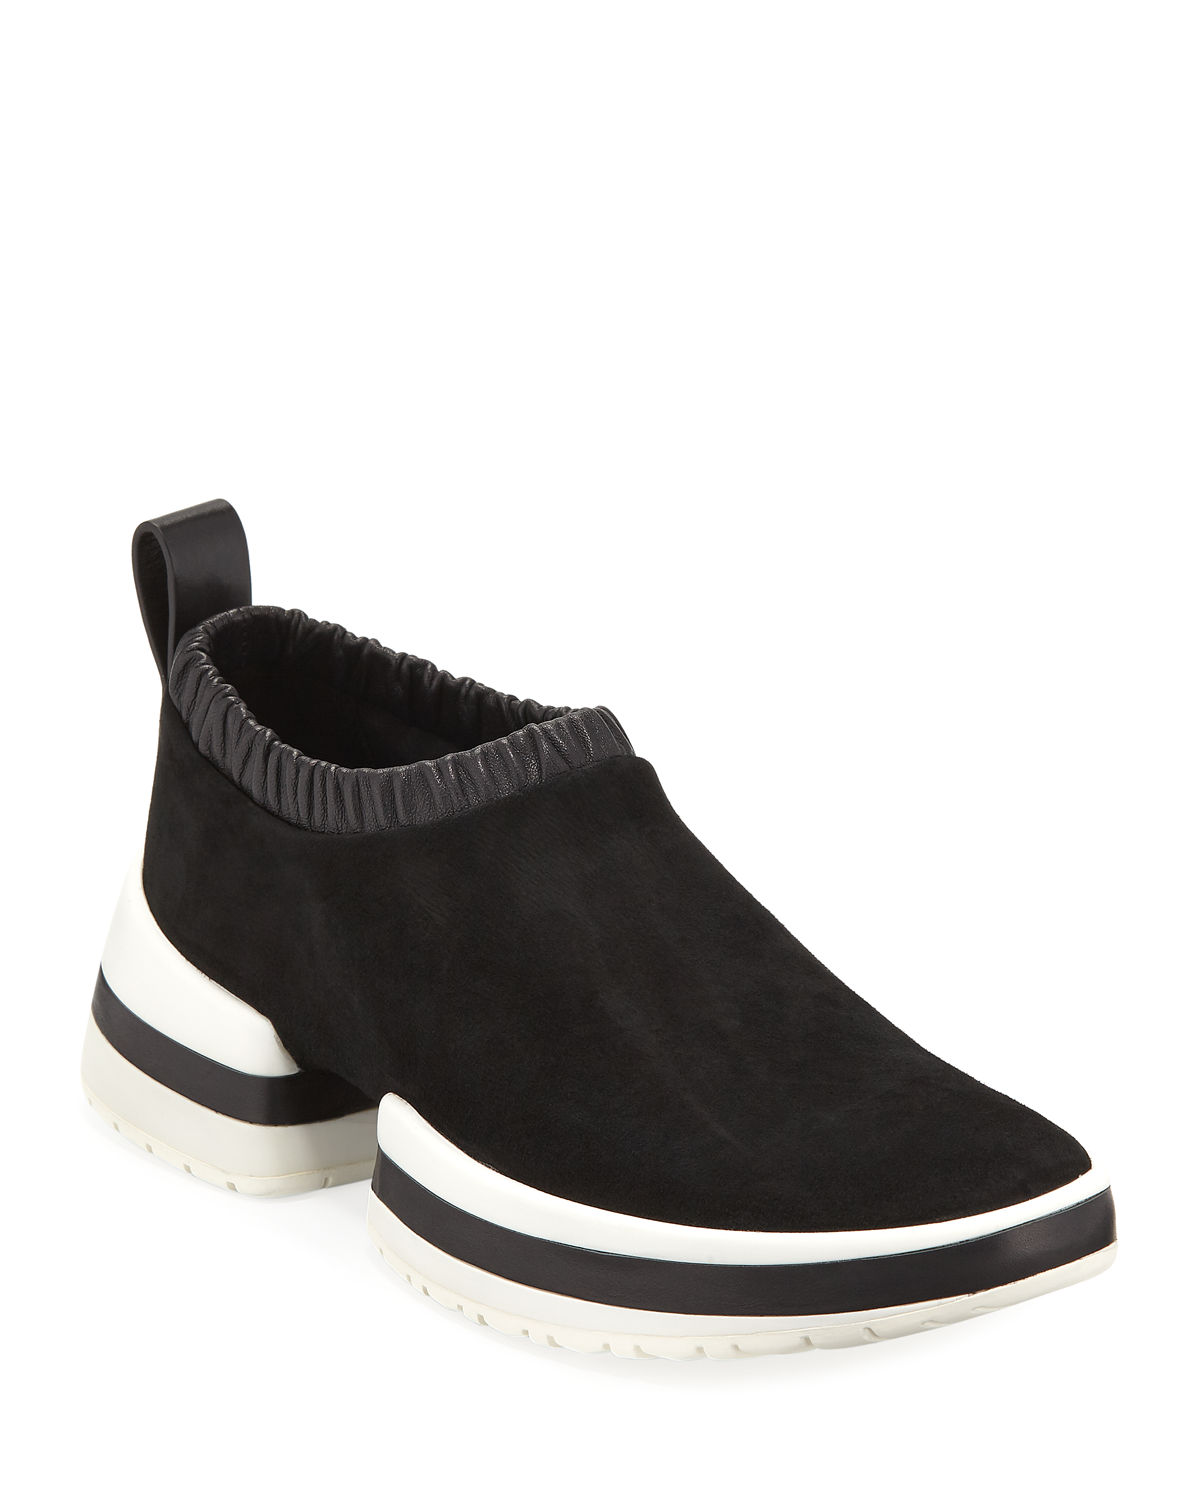 SW-612 Suede/Leather Slip-On Sneakers